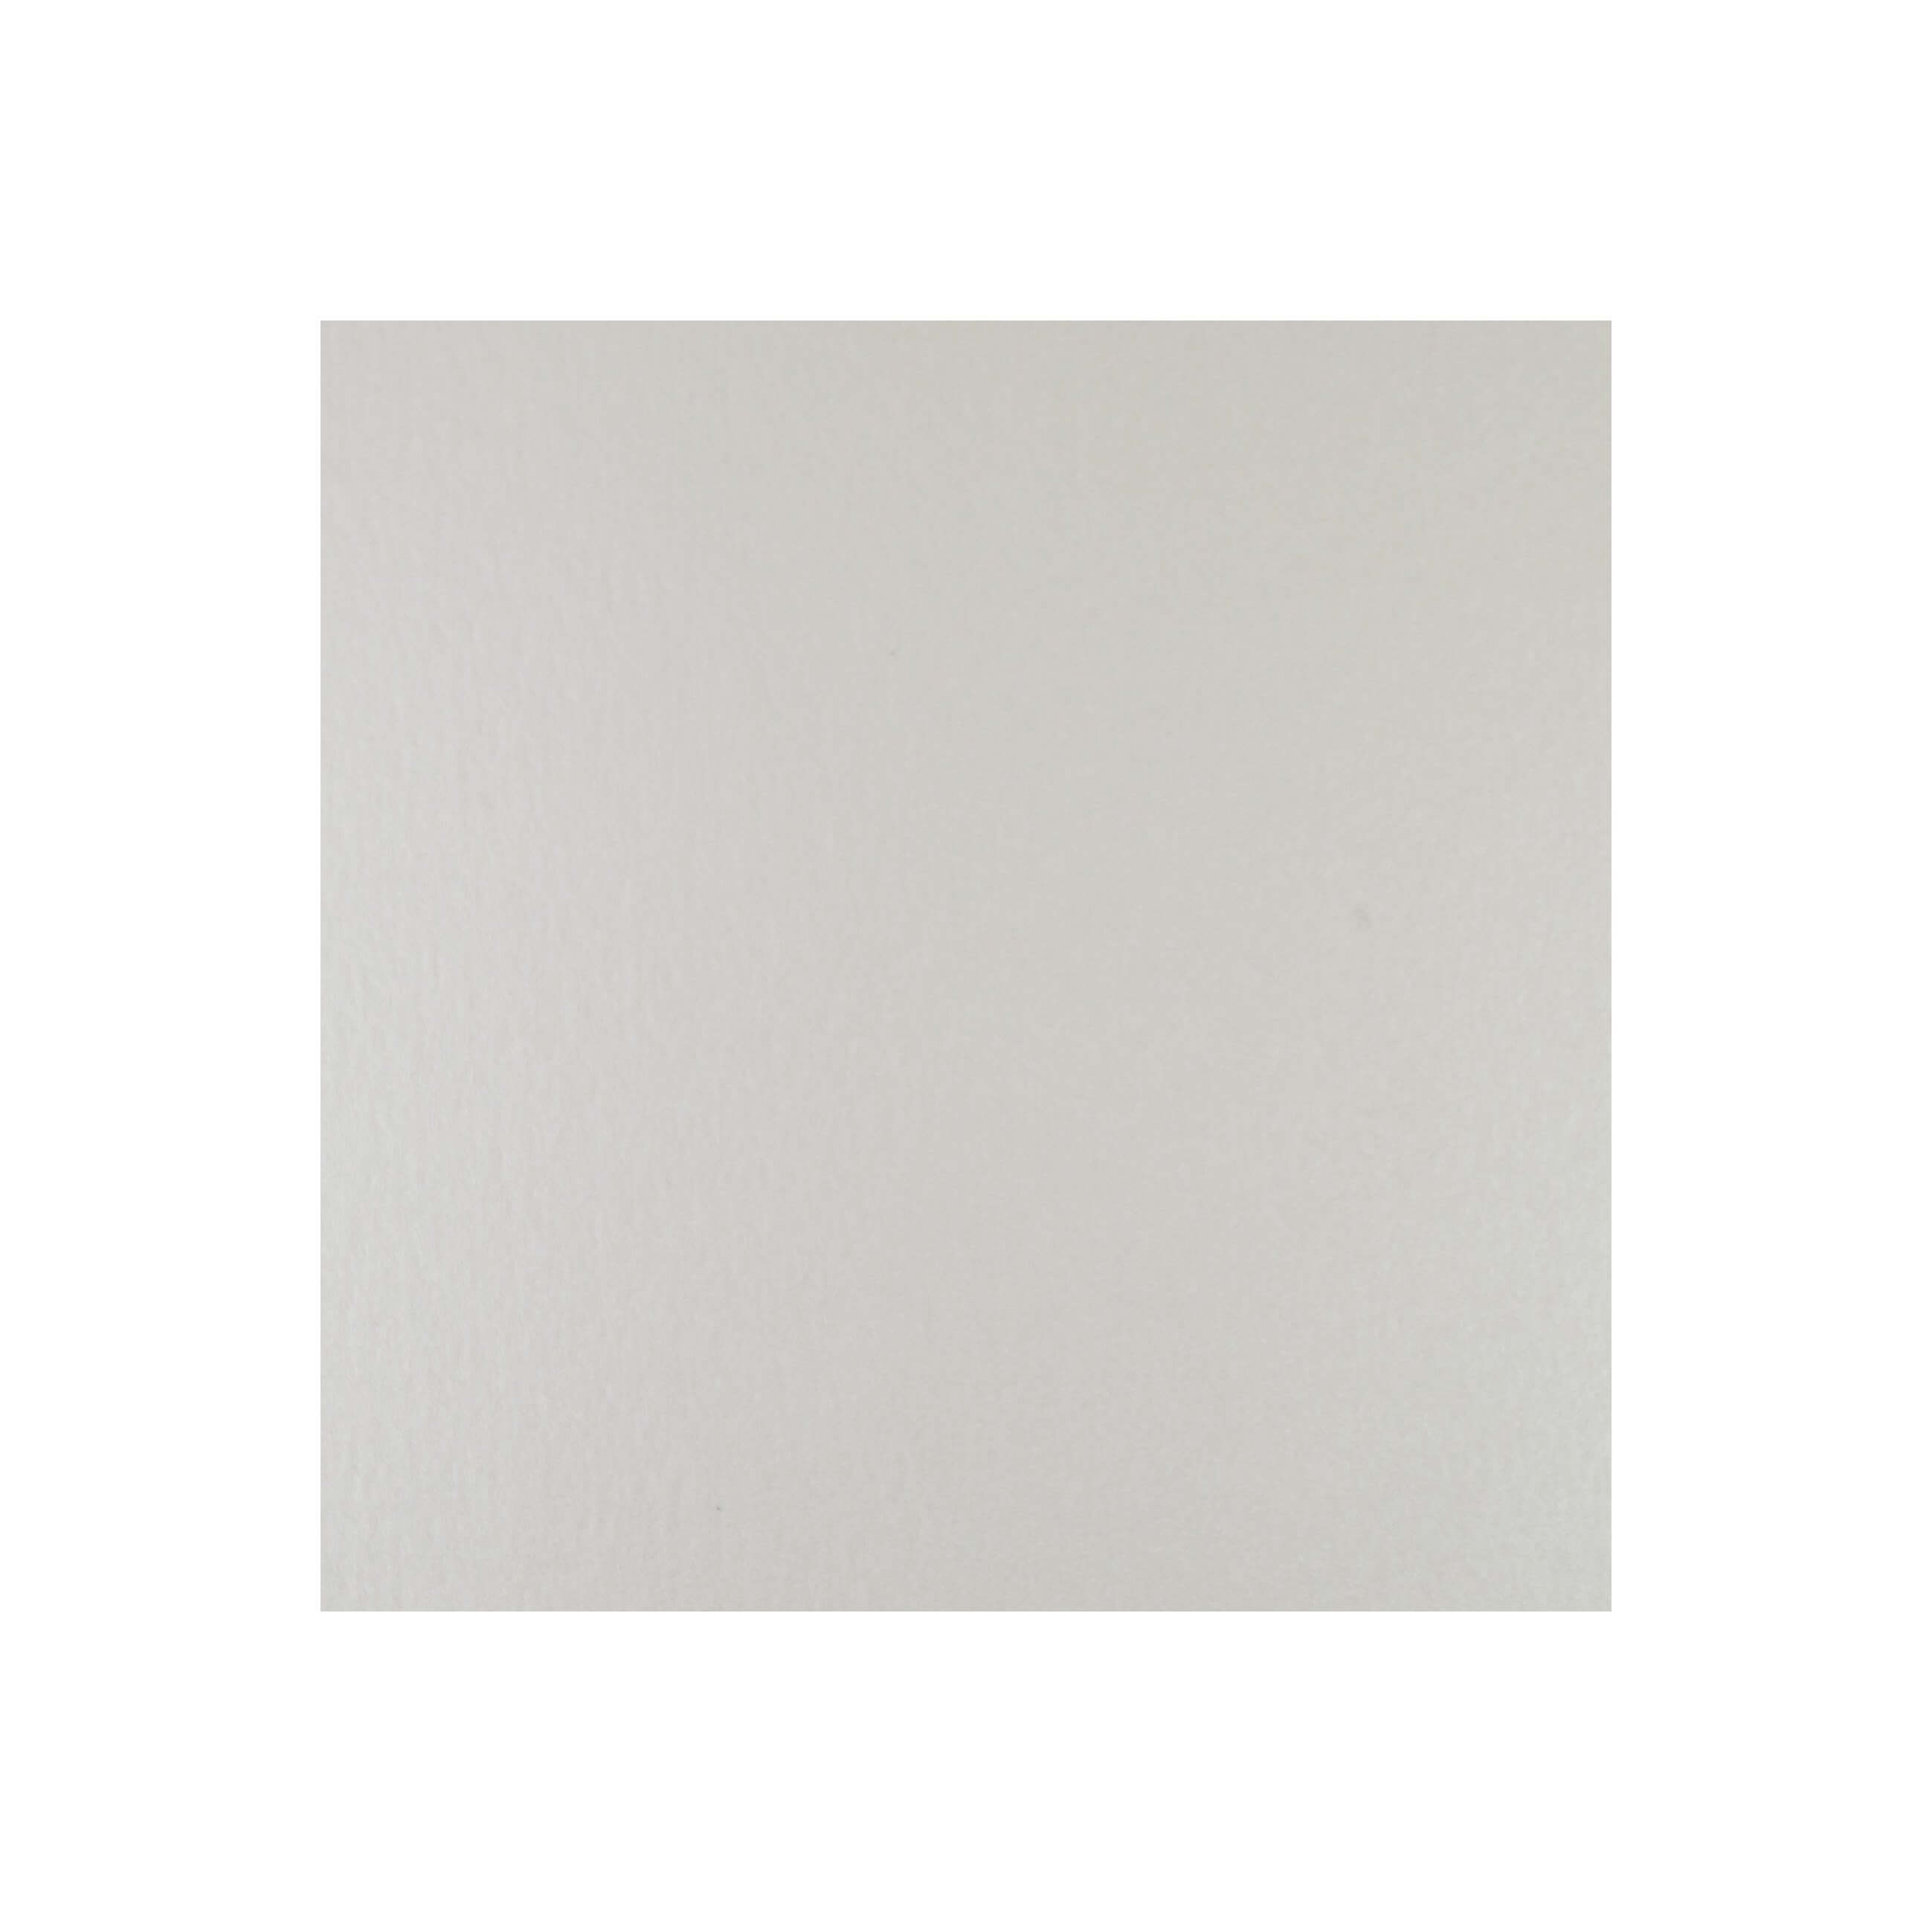 Cardstock 147mm Square - Soft Sheen Ivory